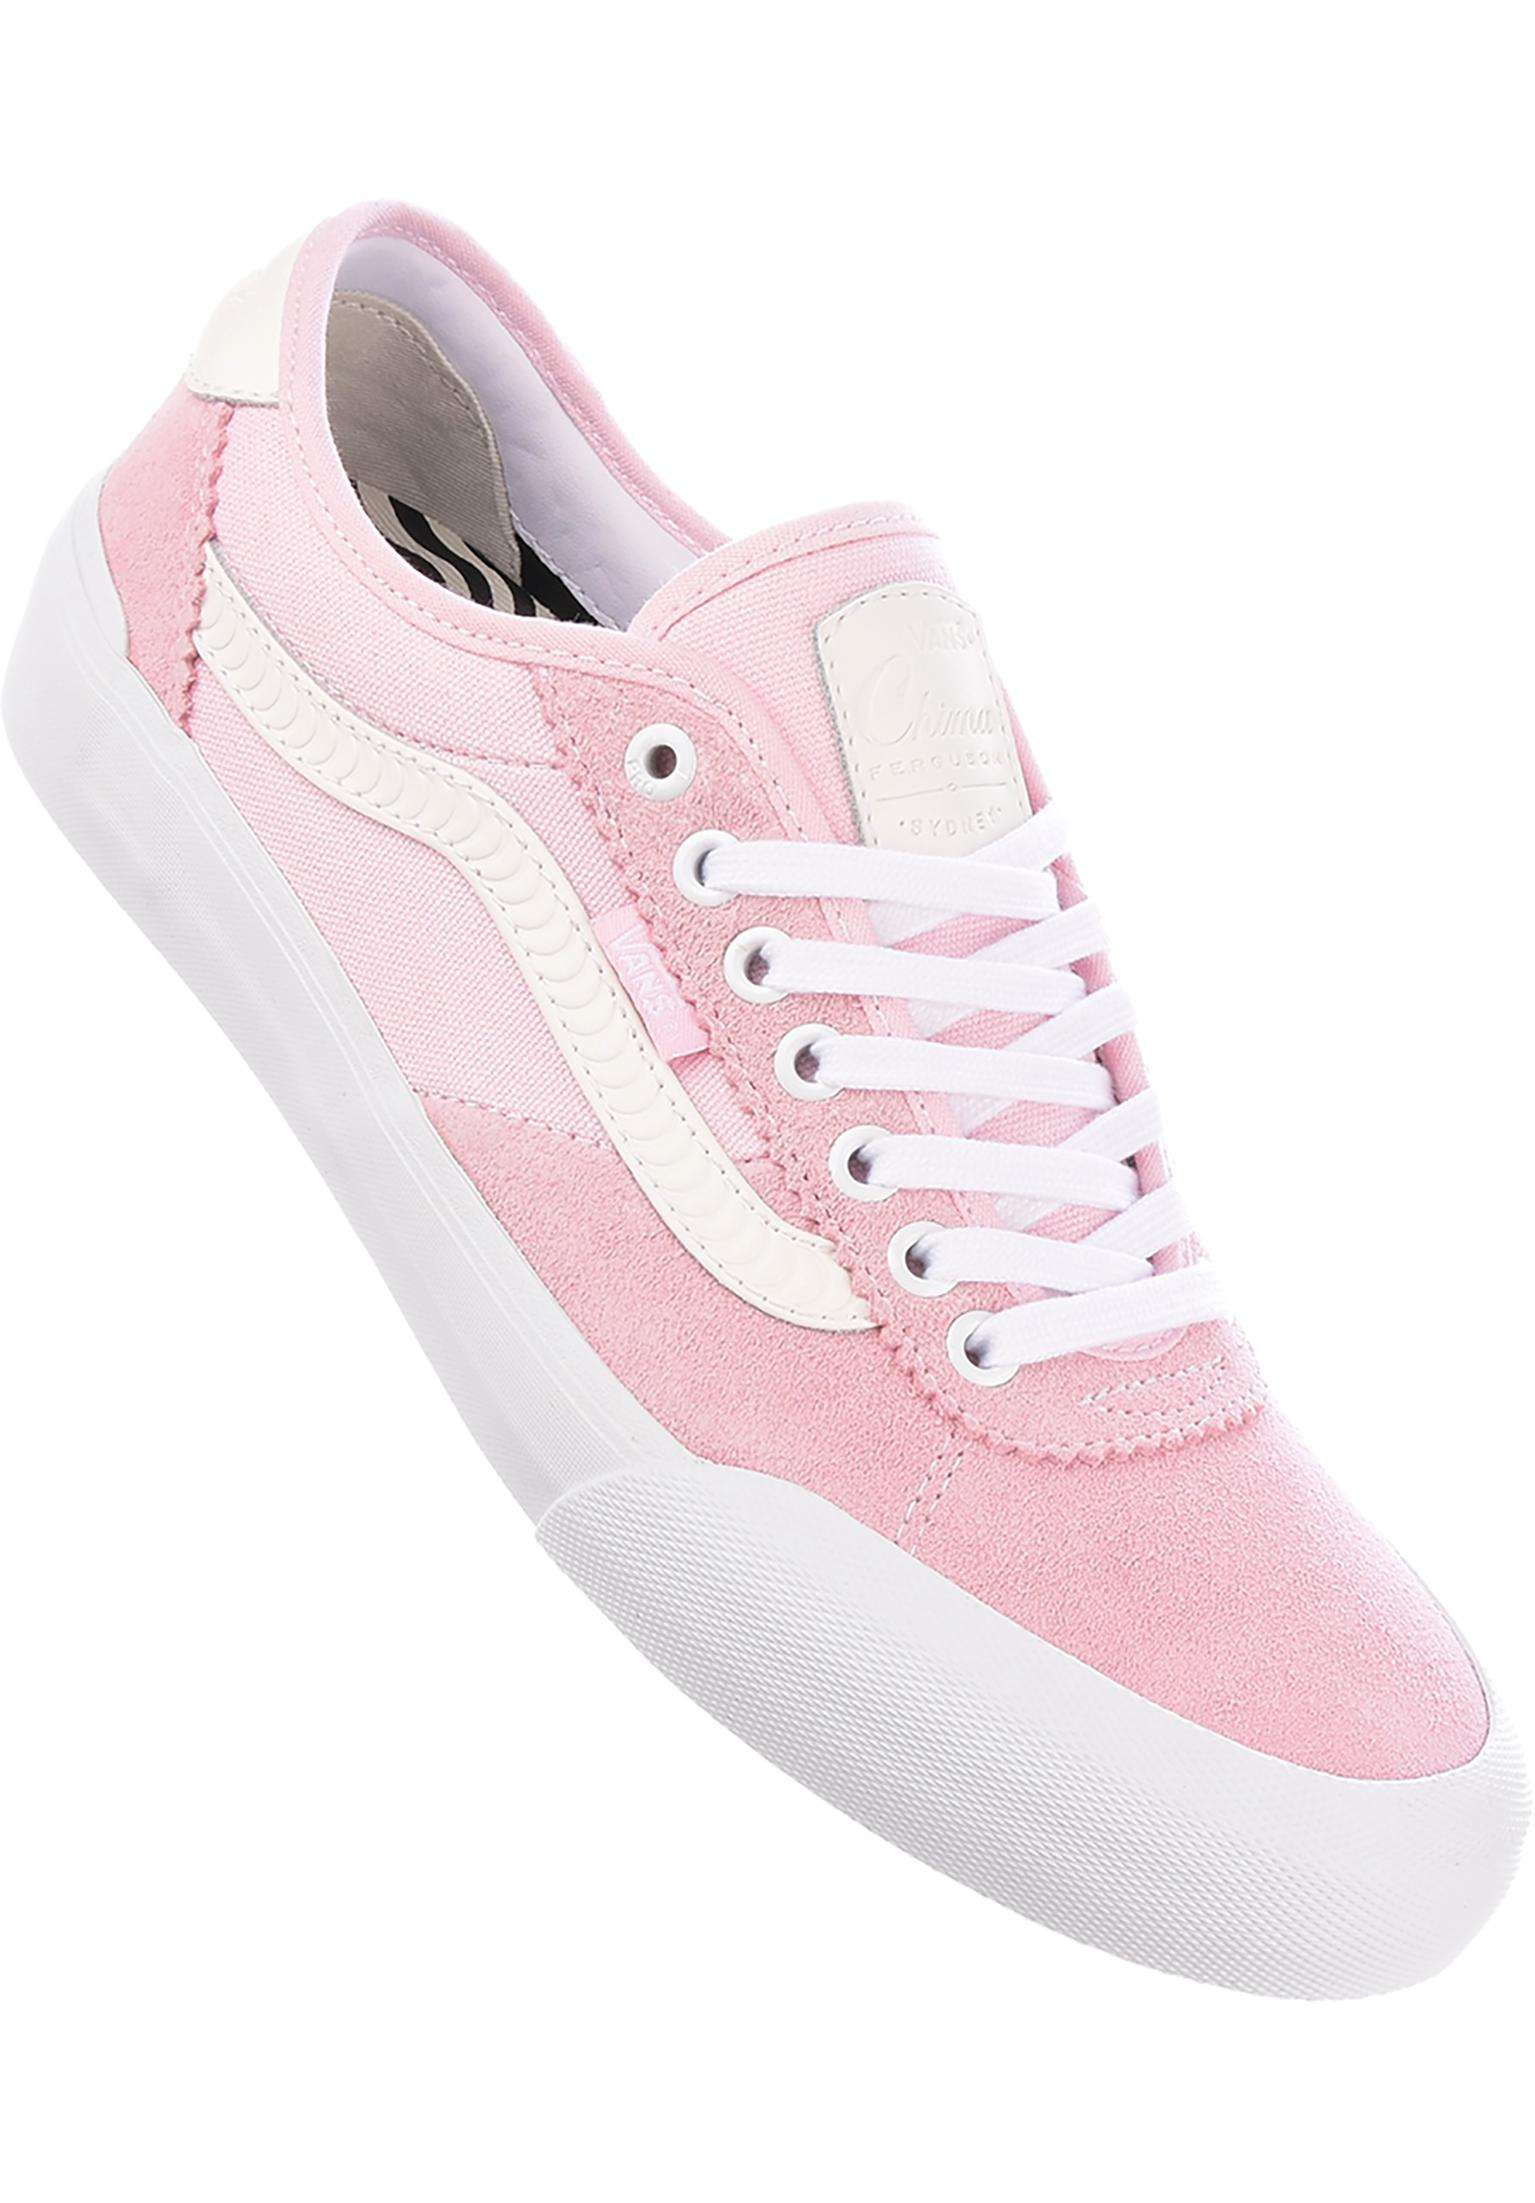 157a04abdc601c Chima Pro 2 x Spitfire Vans All Shoes in pink for Men